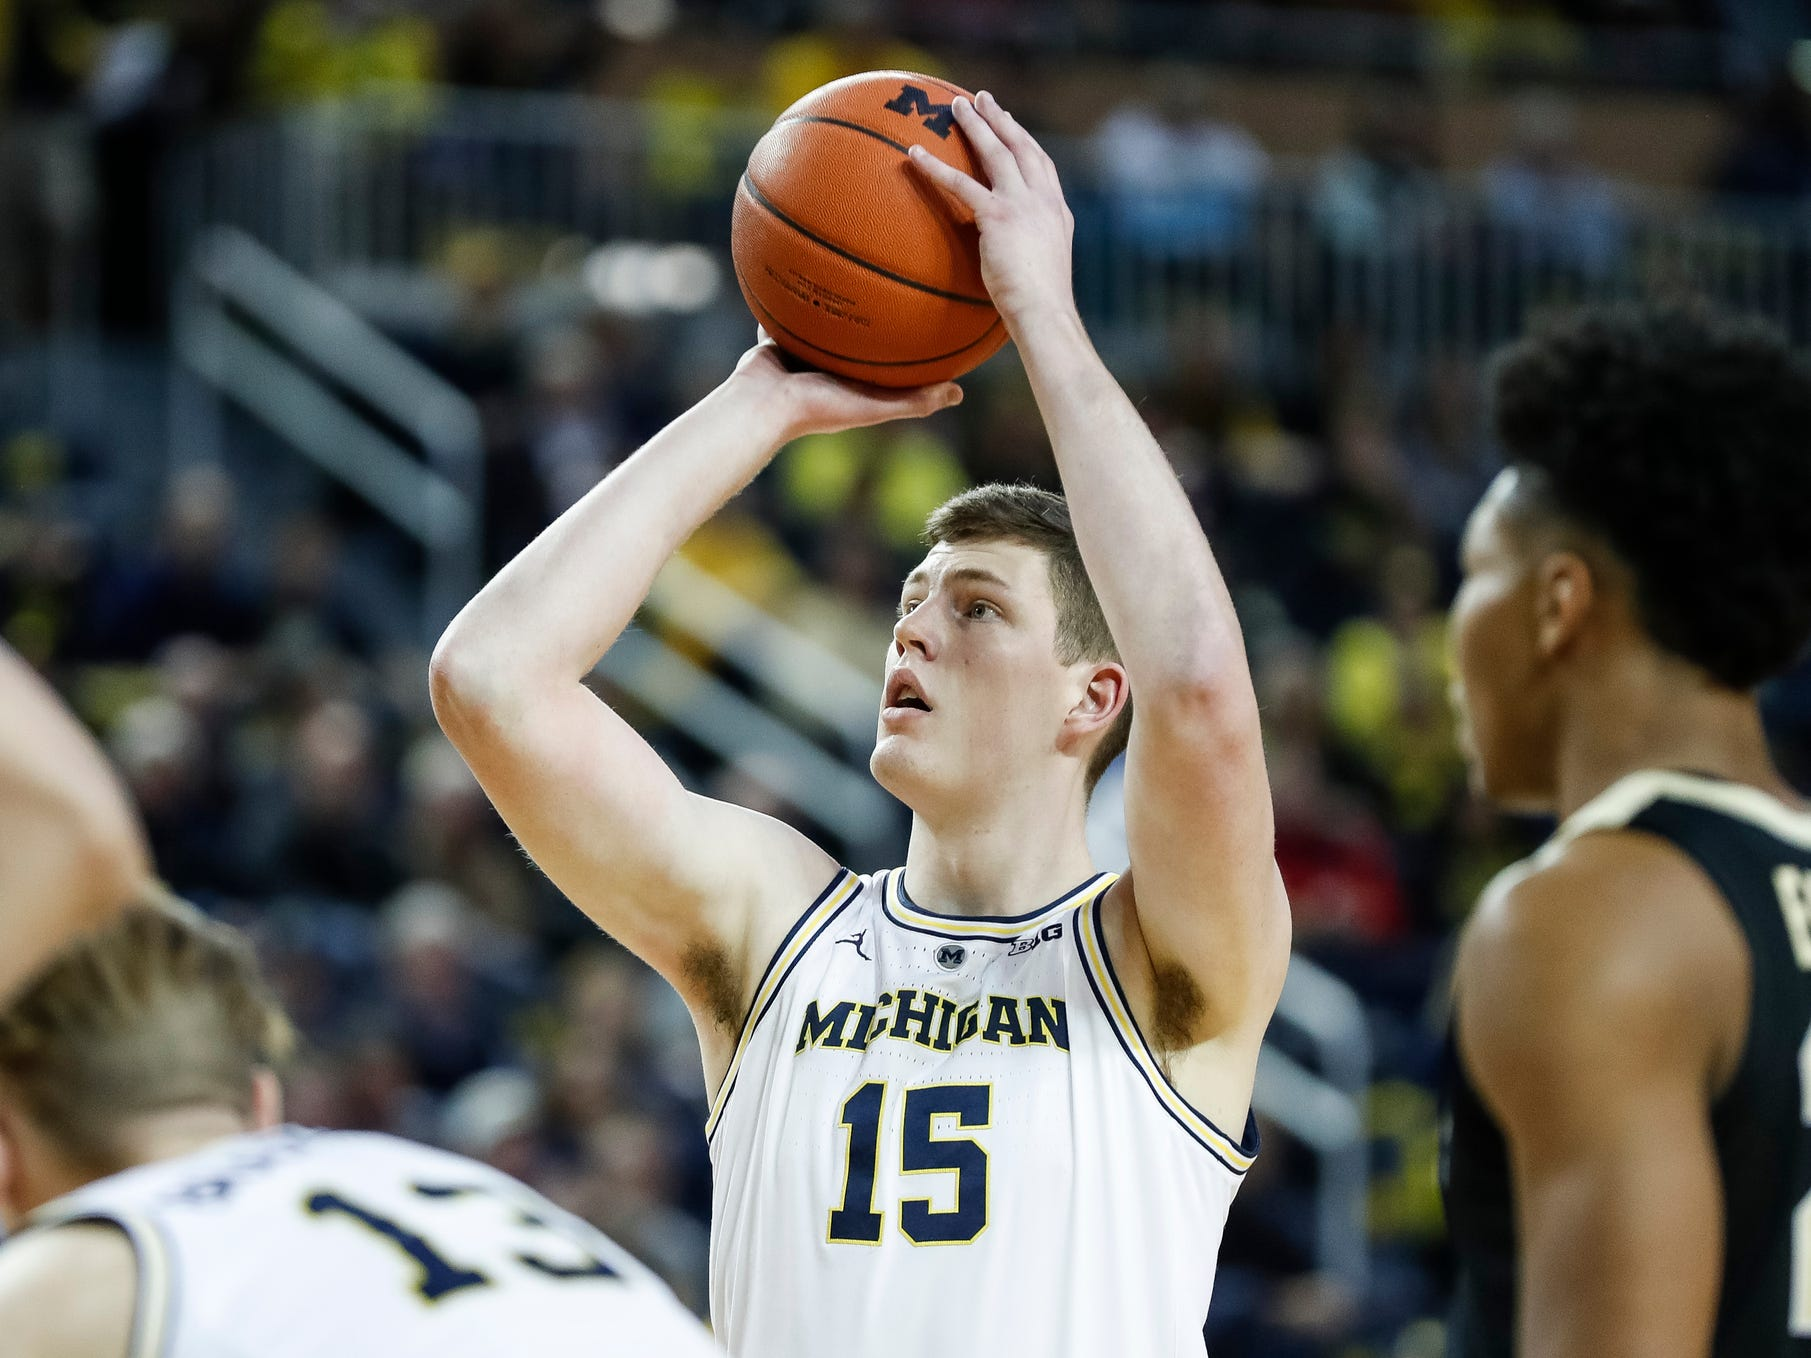 Michigan center Jon Teske attempts for a free thrown during the first half against Purdue at Crisler Center on Saturday, Dec. 1, 2018.